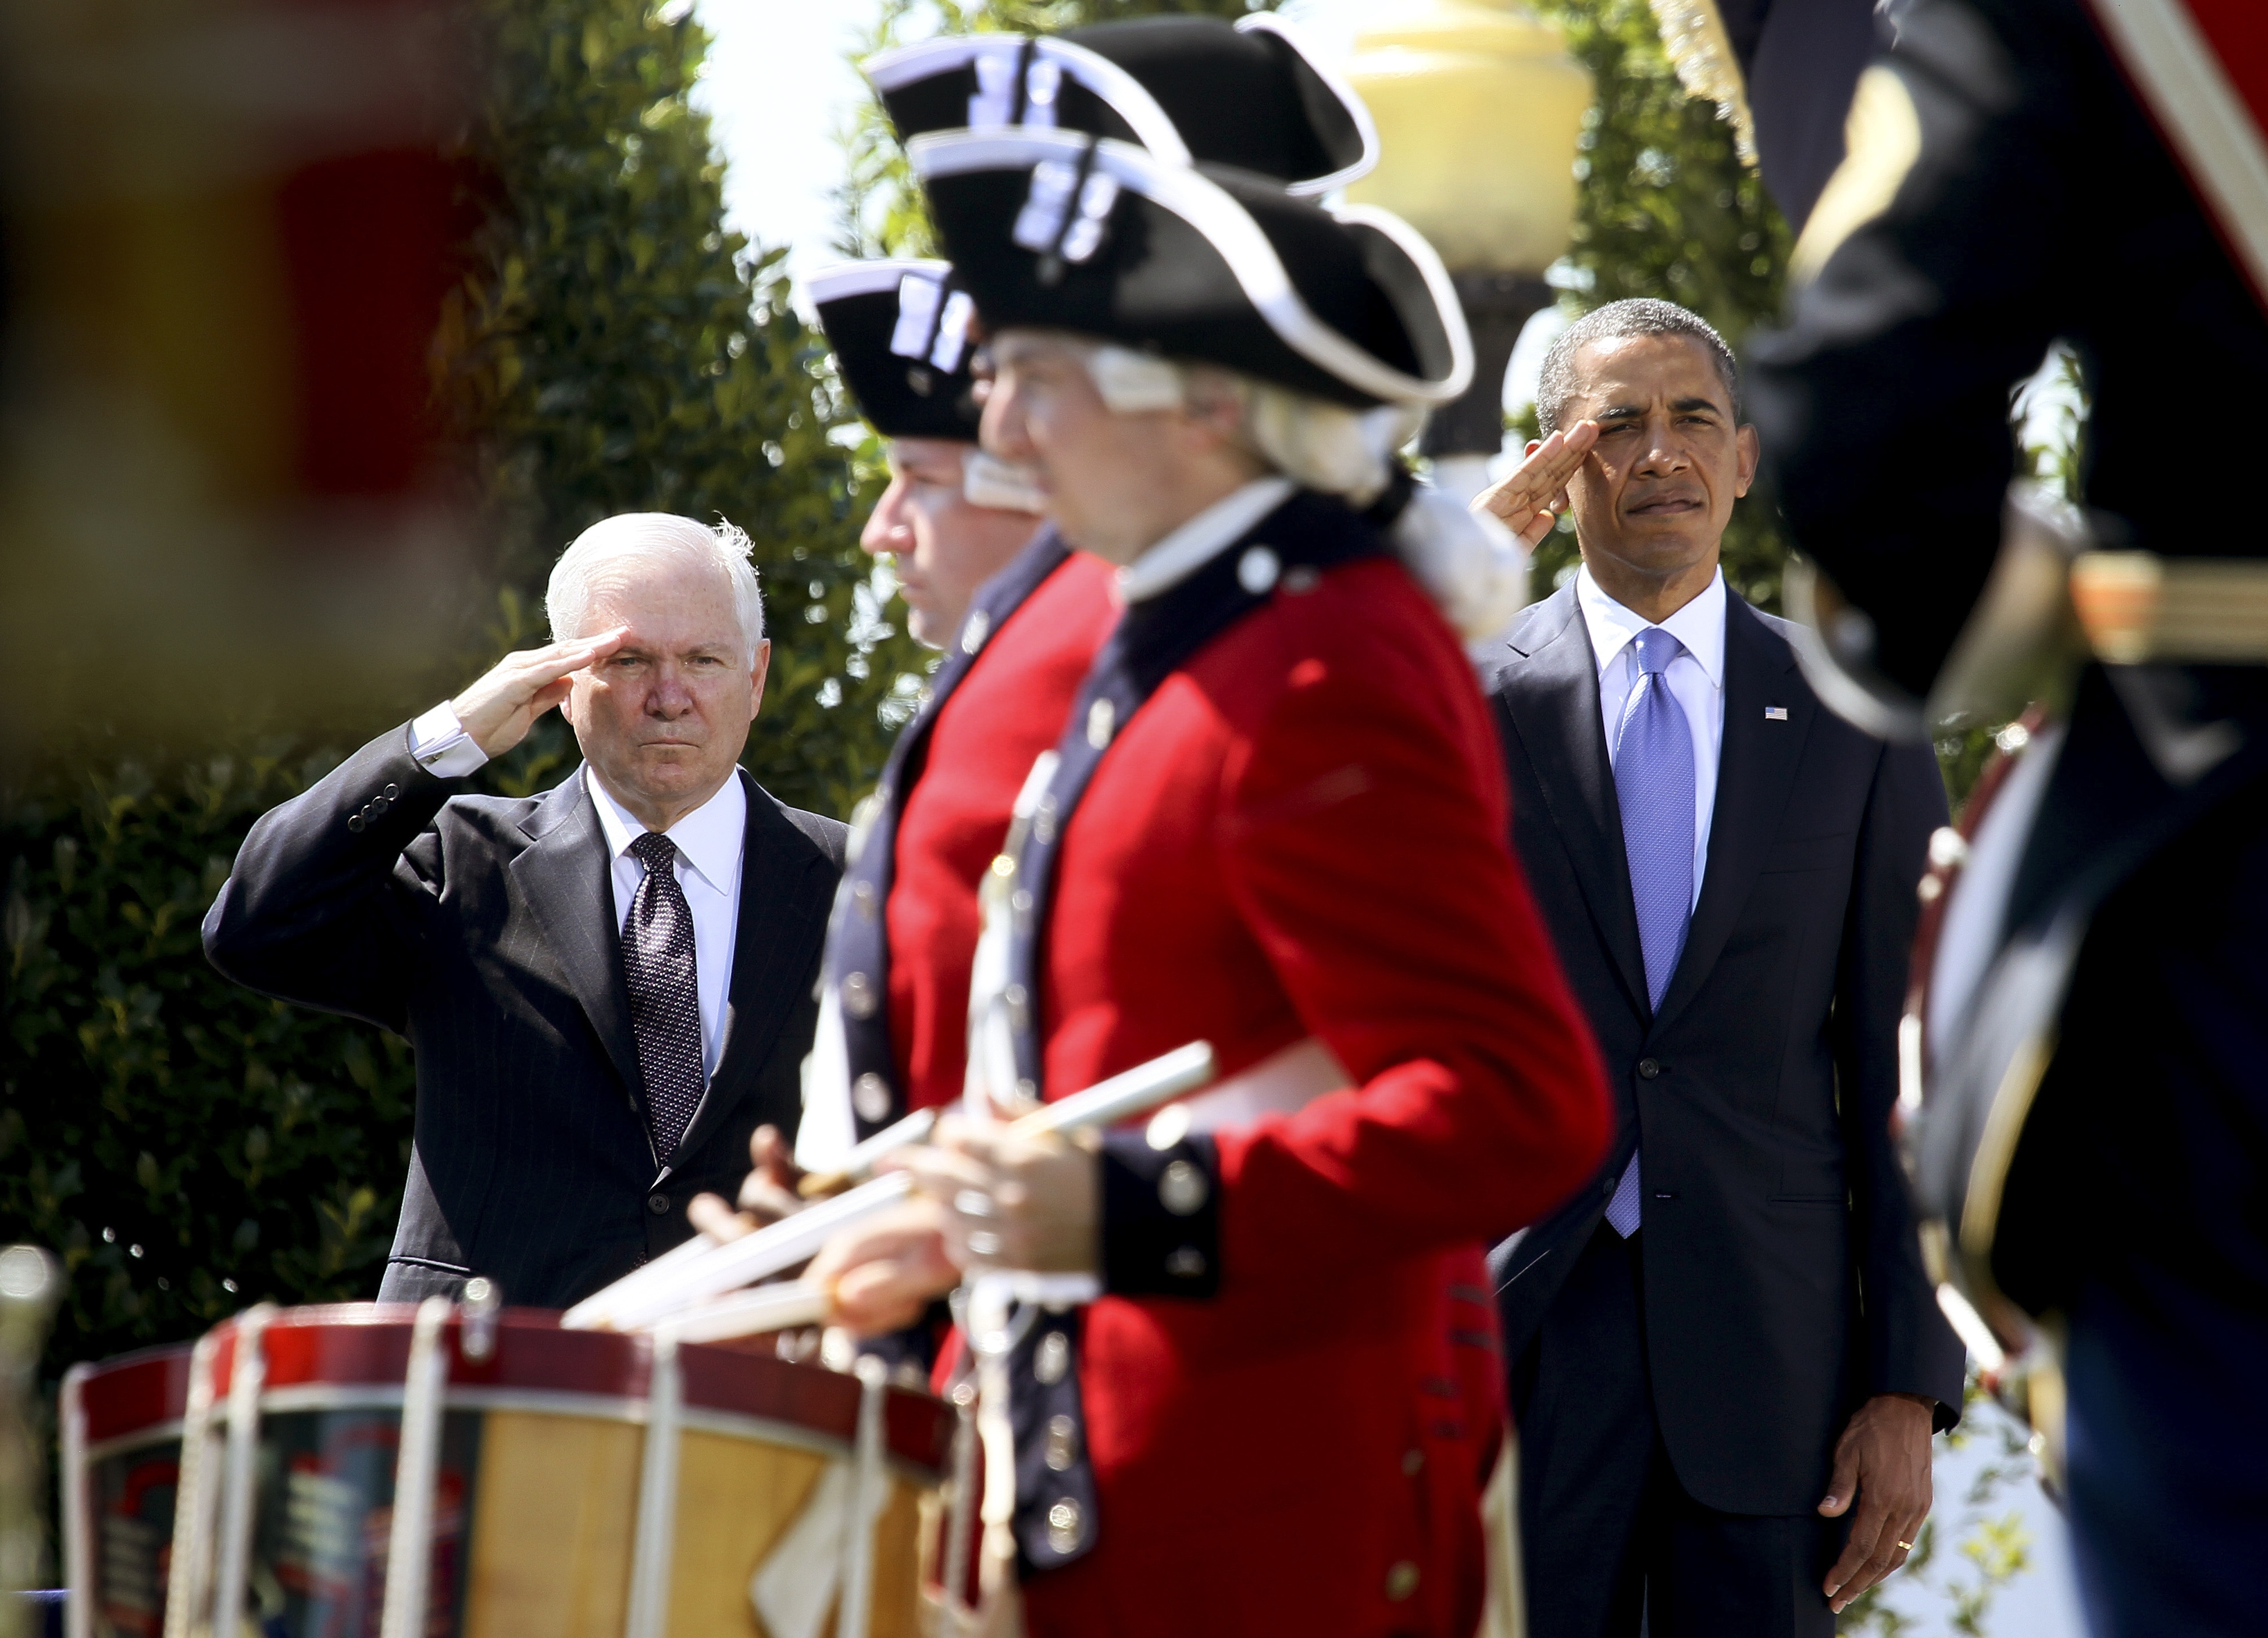 FILE -- President Barack Obama and Secretary of Defense Robert Gates salute during the Armed Forces Farewell Tribute in honor of Gates at the Pentagon in Washington, June 30, 2011.  þÄúDuty: Memoirs of a Secretary at War,þÄù Gates' new memoir, offers 600 pages of detailed history of his personal wars with Congress, the Pentagon bureaucracy and, in particular, ObamaþÄôs White House staff. (Doug Mills/The New York Times)